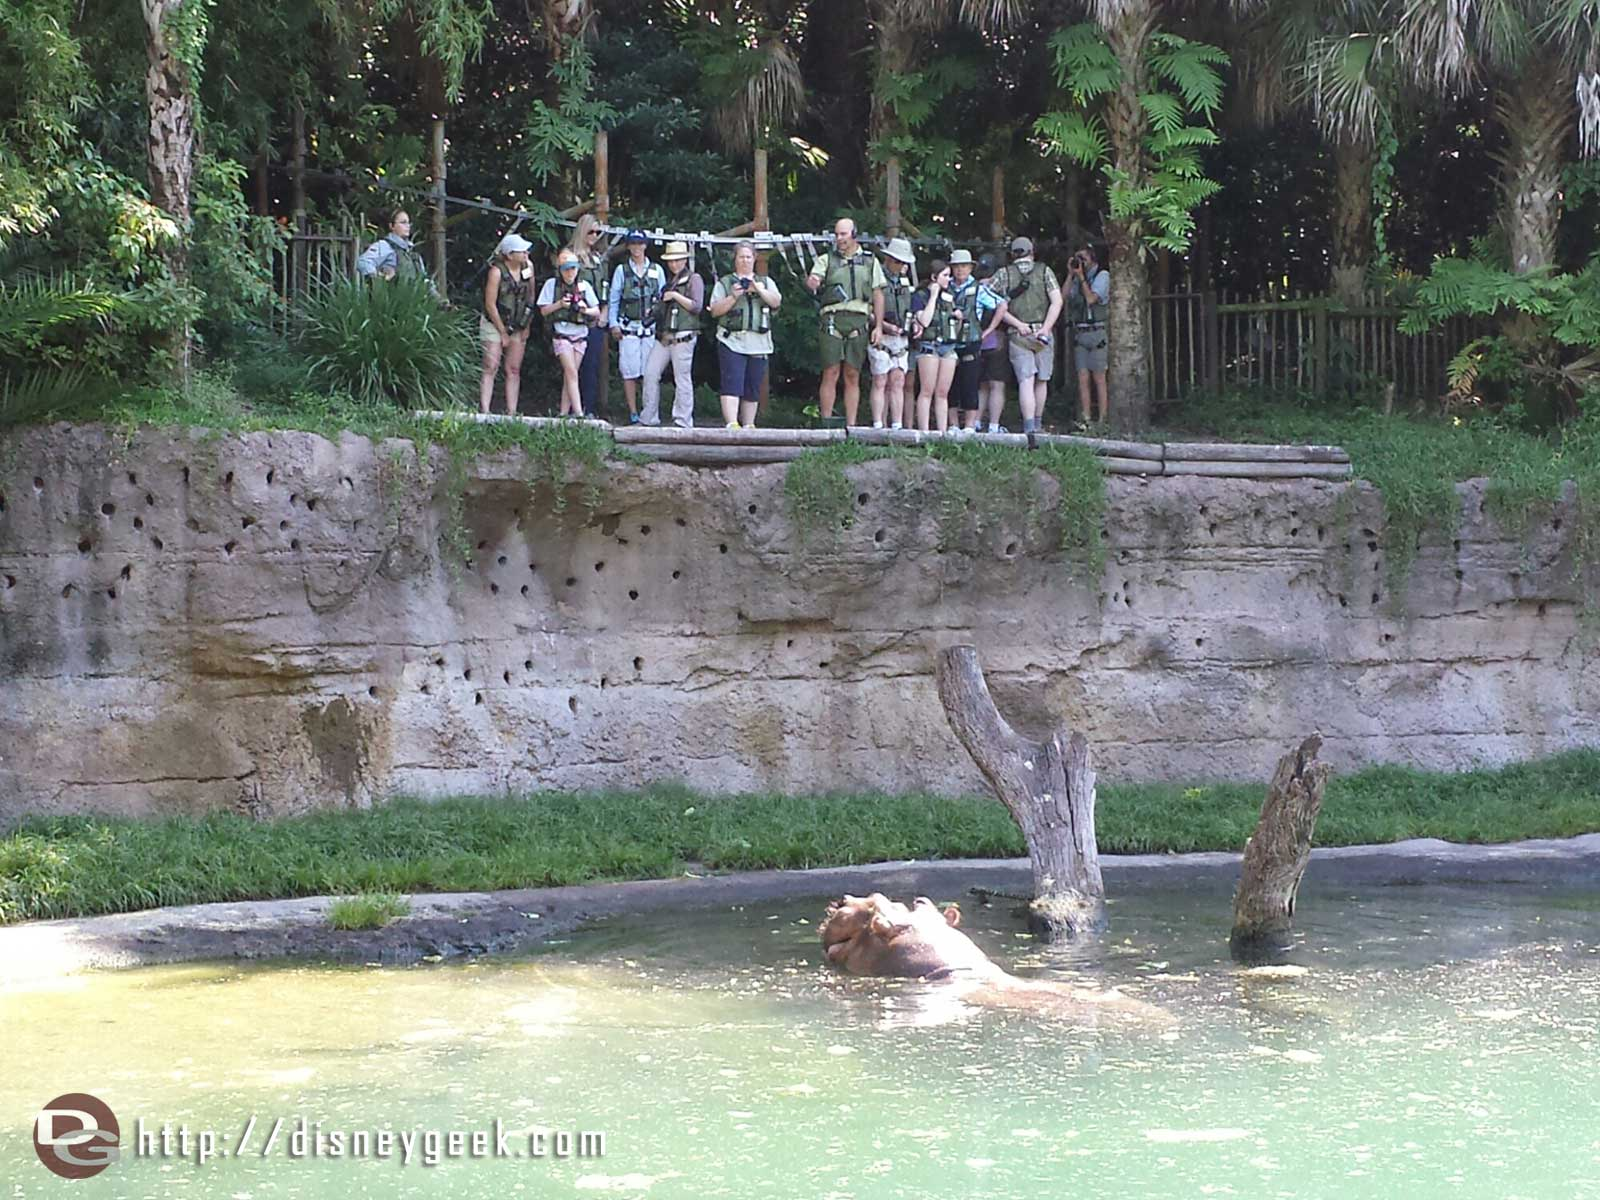 Passed a Wild Africa Trek group by the hippos on the Kilimanjaro Safari Disney's Animal Kingdom